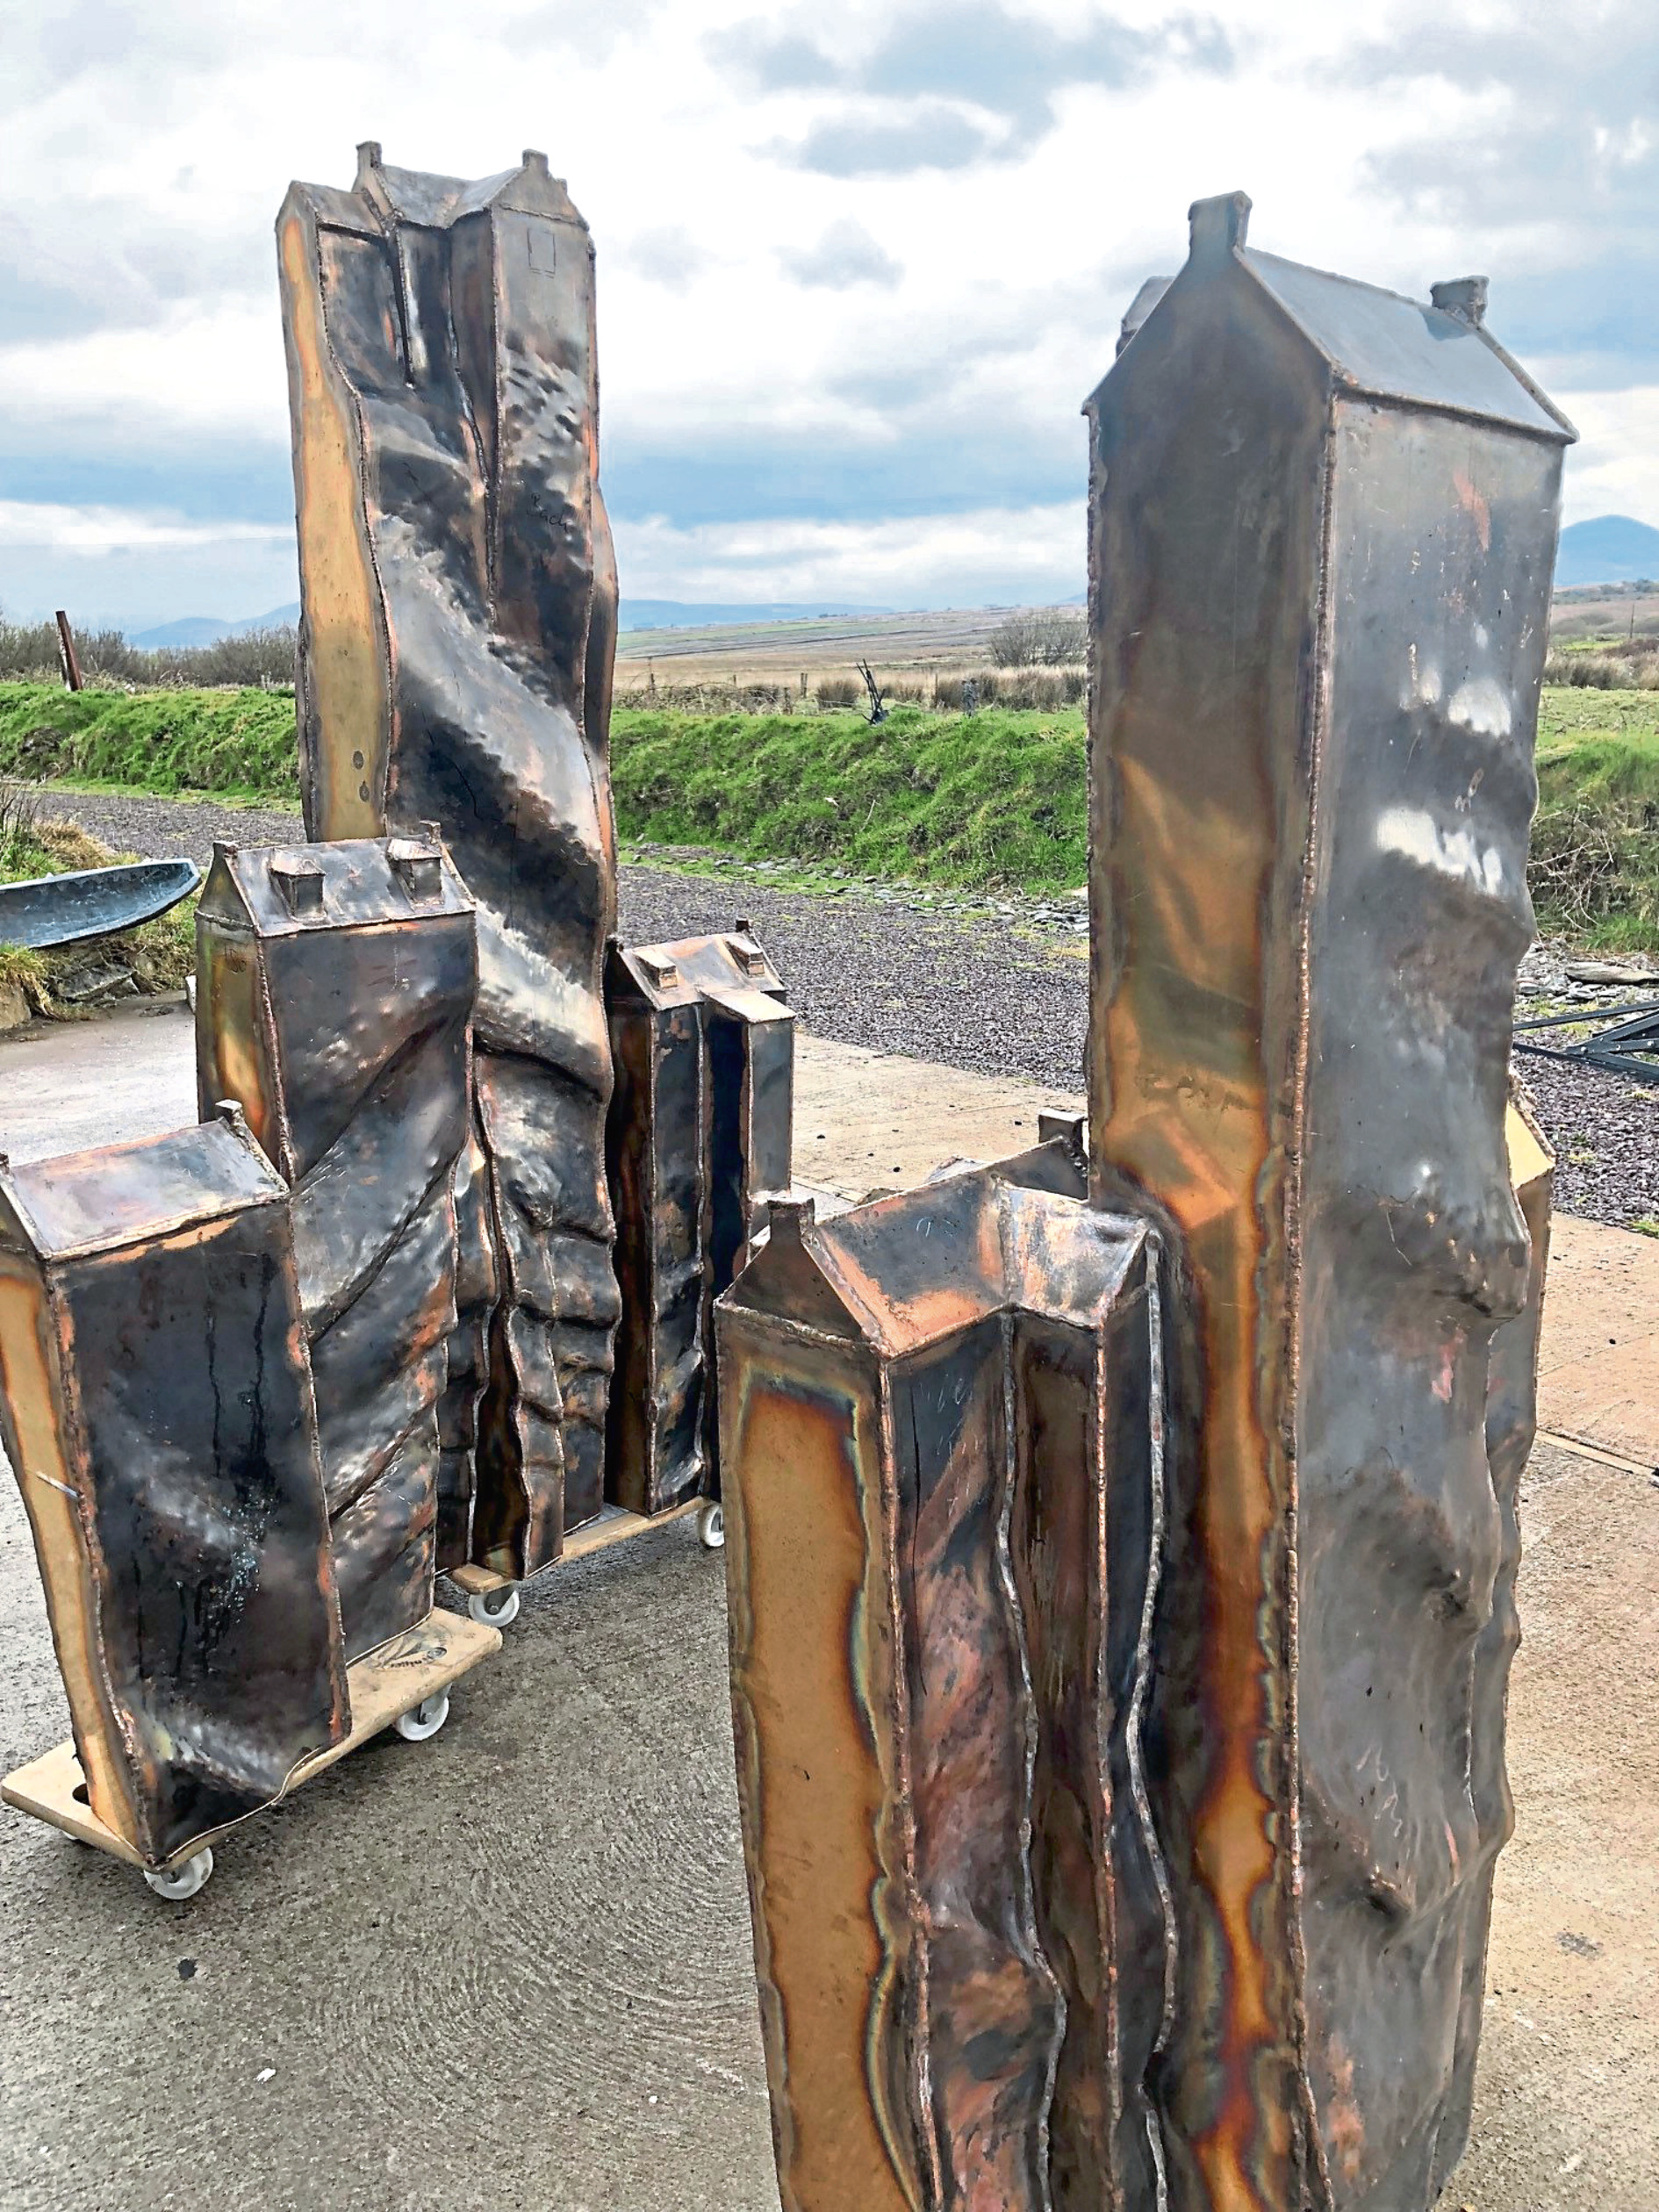 The bronze sculpture created by artist Holger will be unveiled in Westhill this weekend